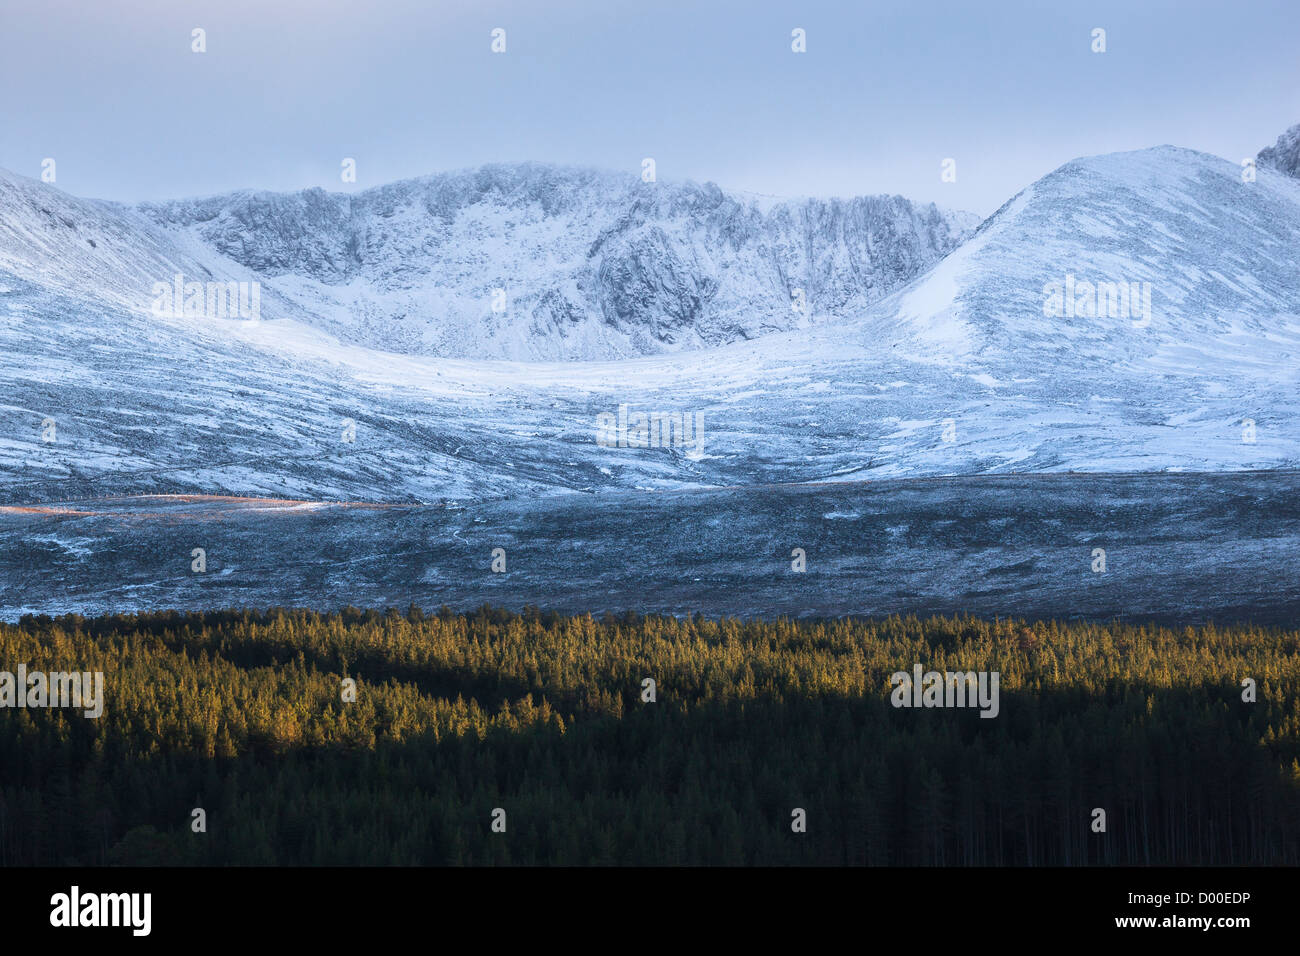 Coire an t-Sneachda and pine forest from Loch Morlich in the Cairngorms, Scottish Highlands - Stock Image